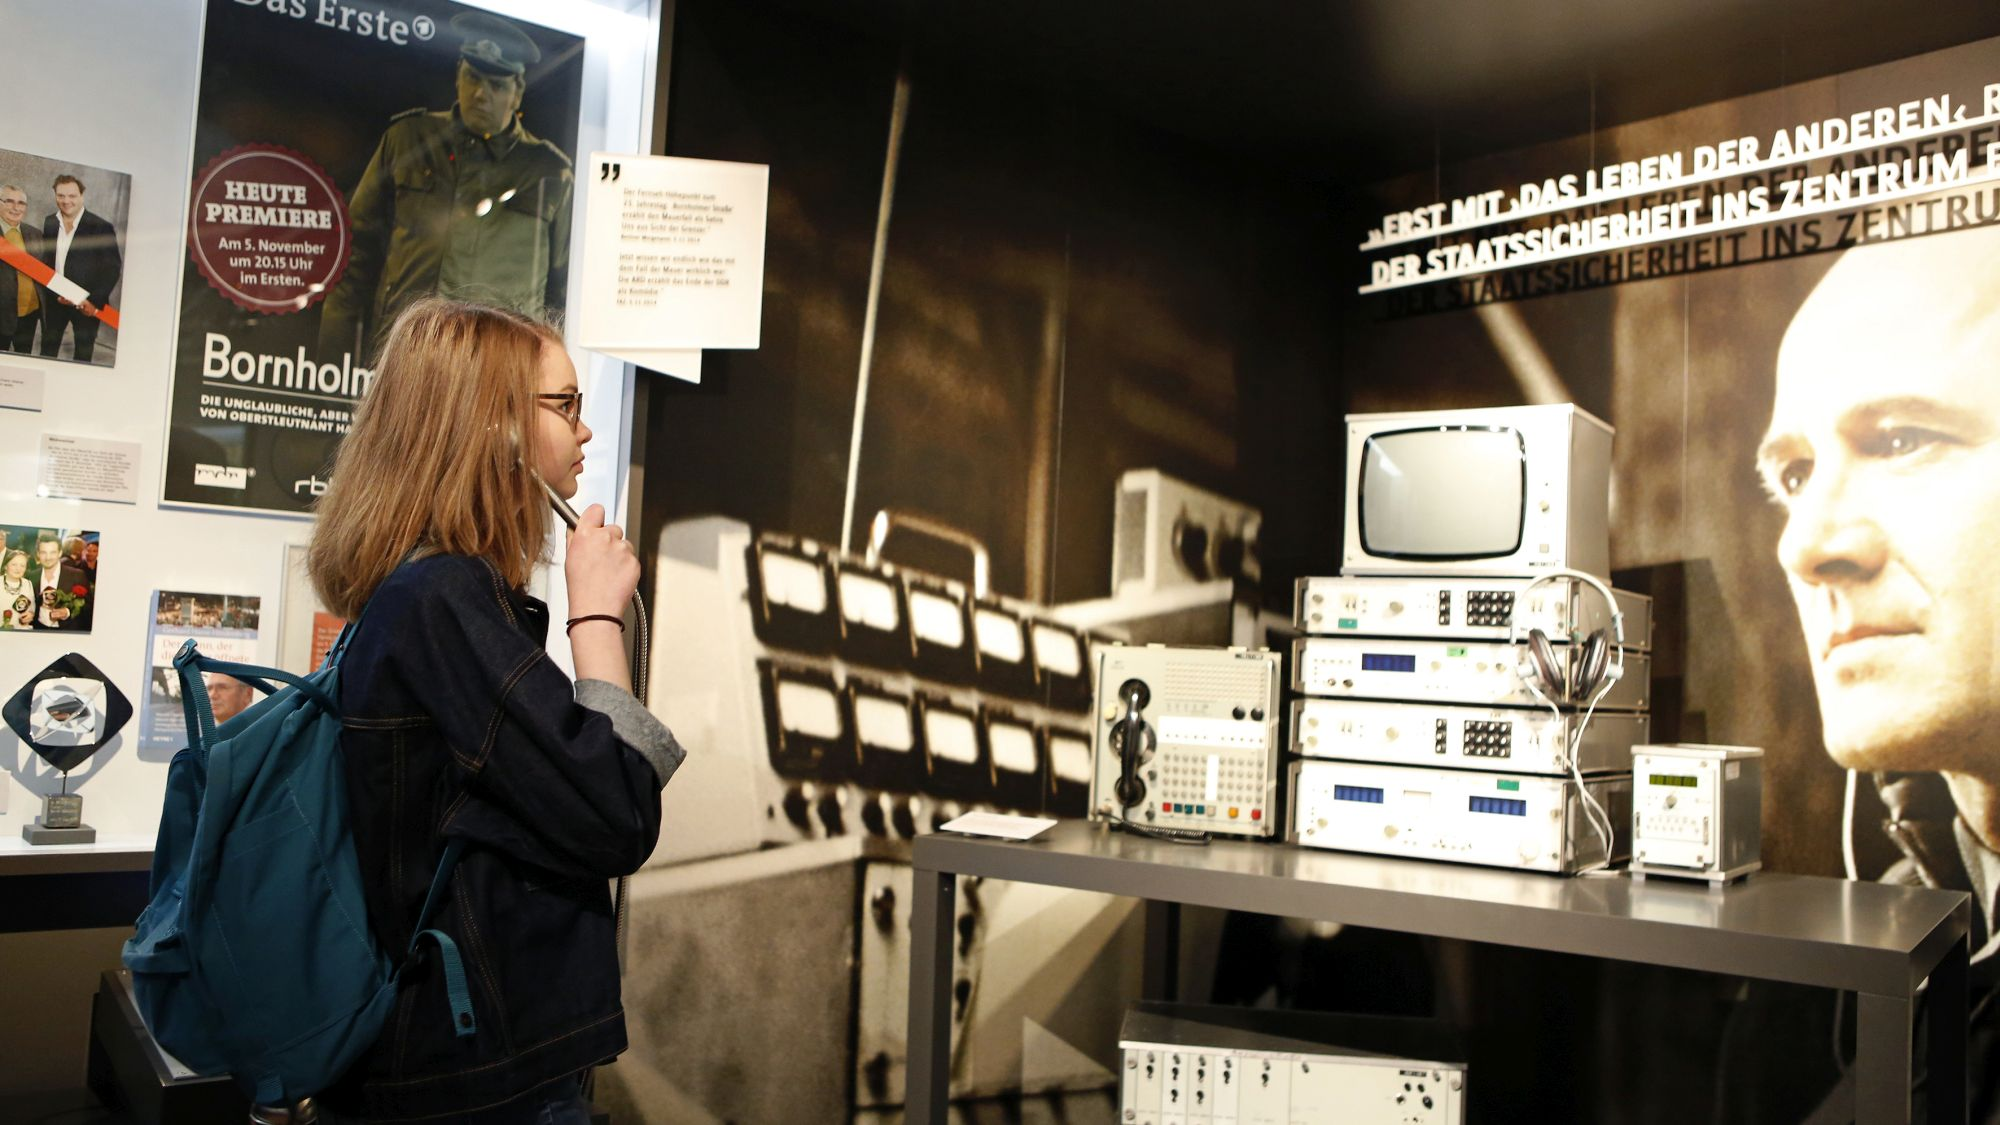 A young woman listens at a media station in the exhibition